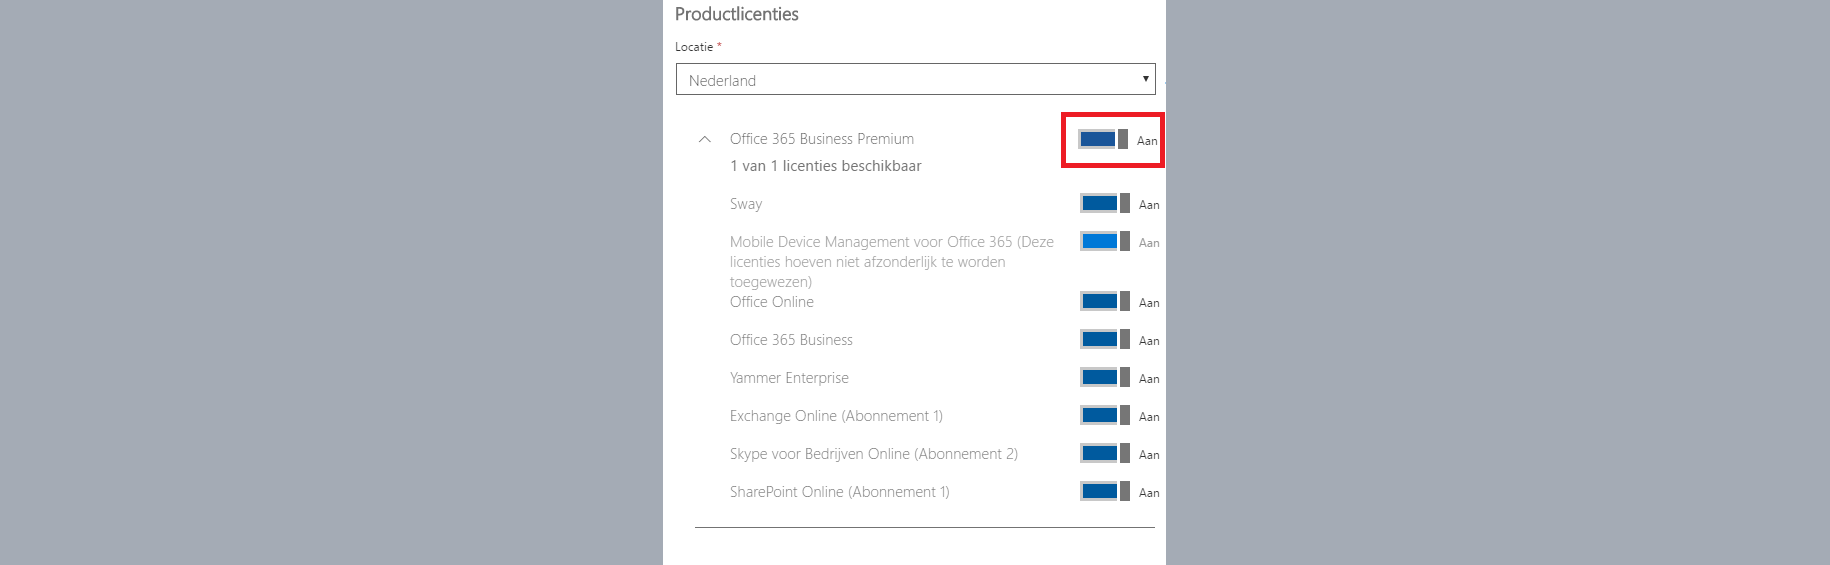 office 365 productlicenties inschakelen